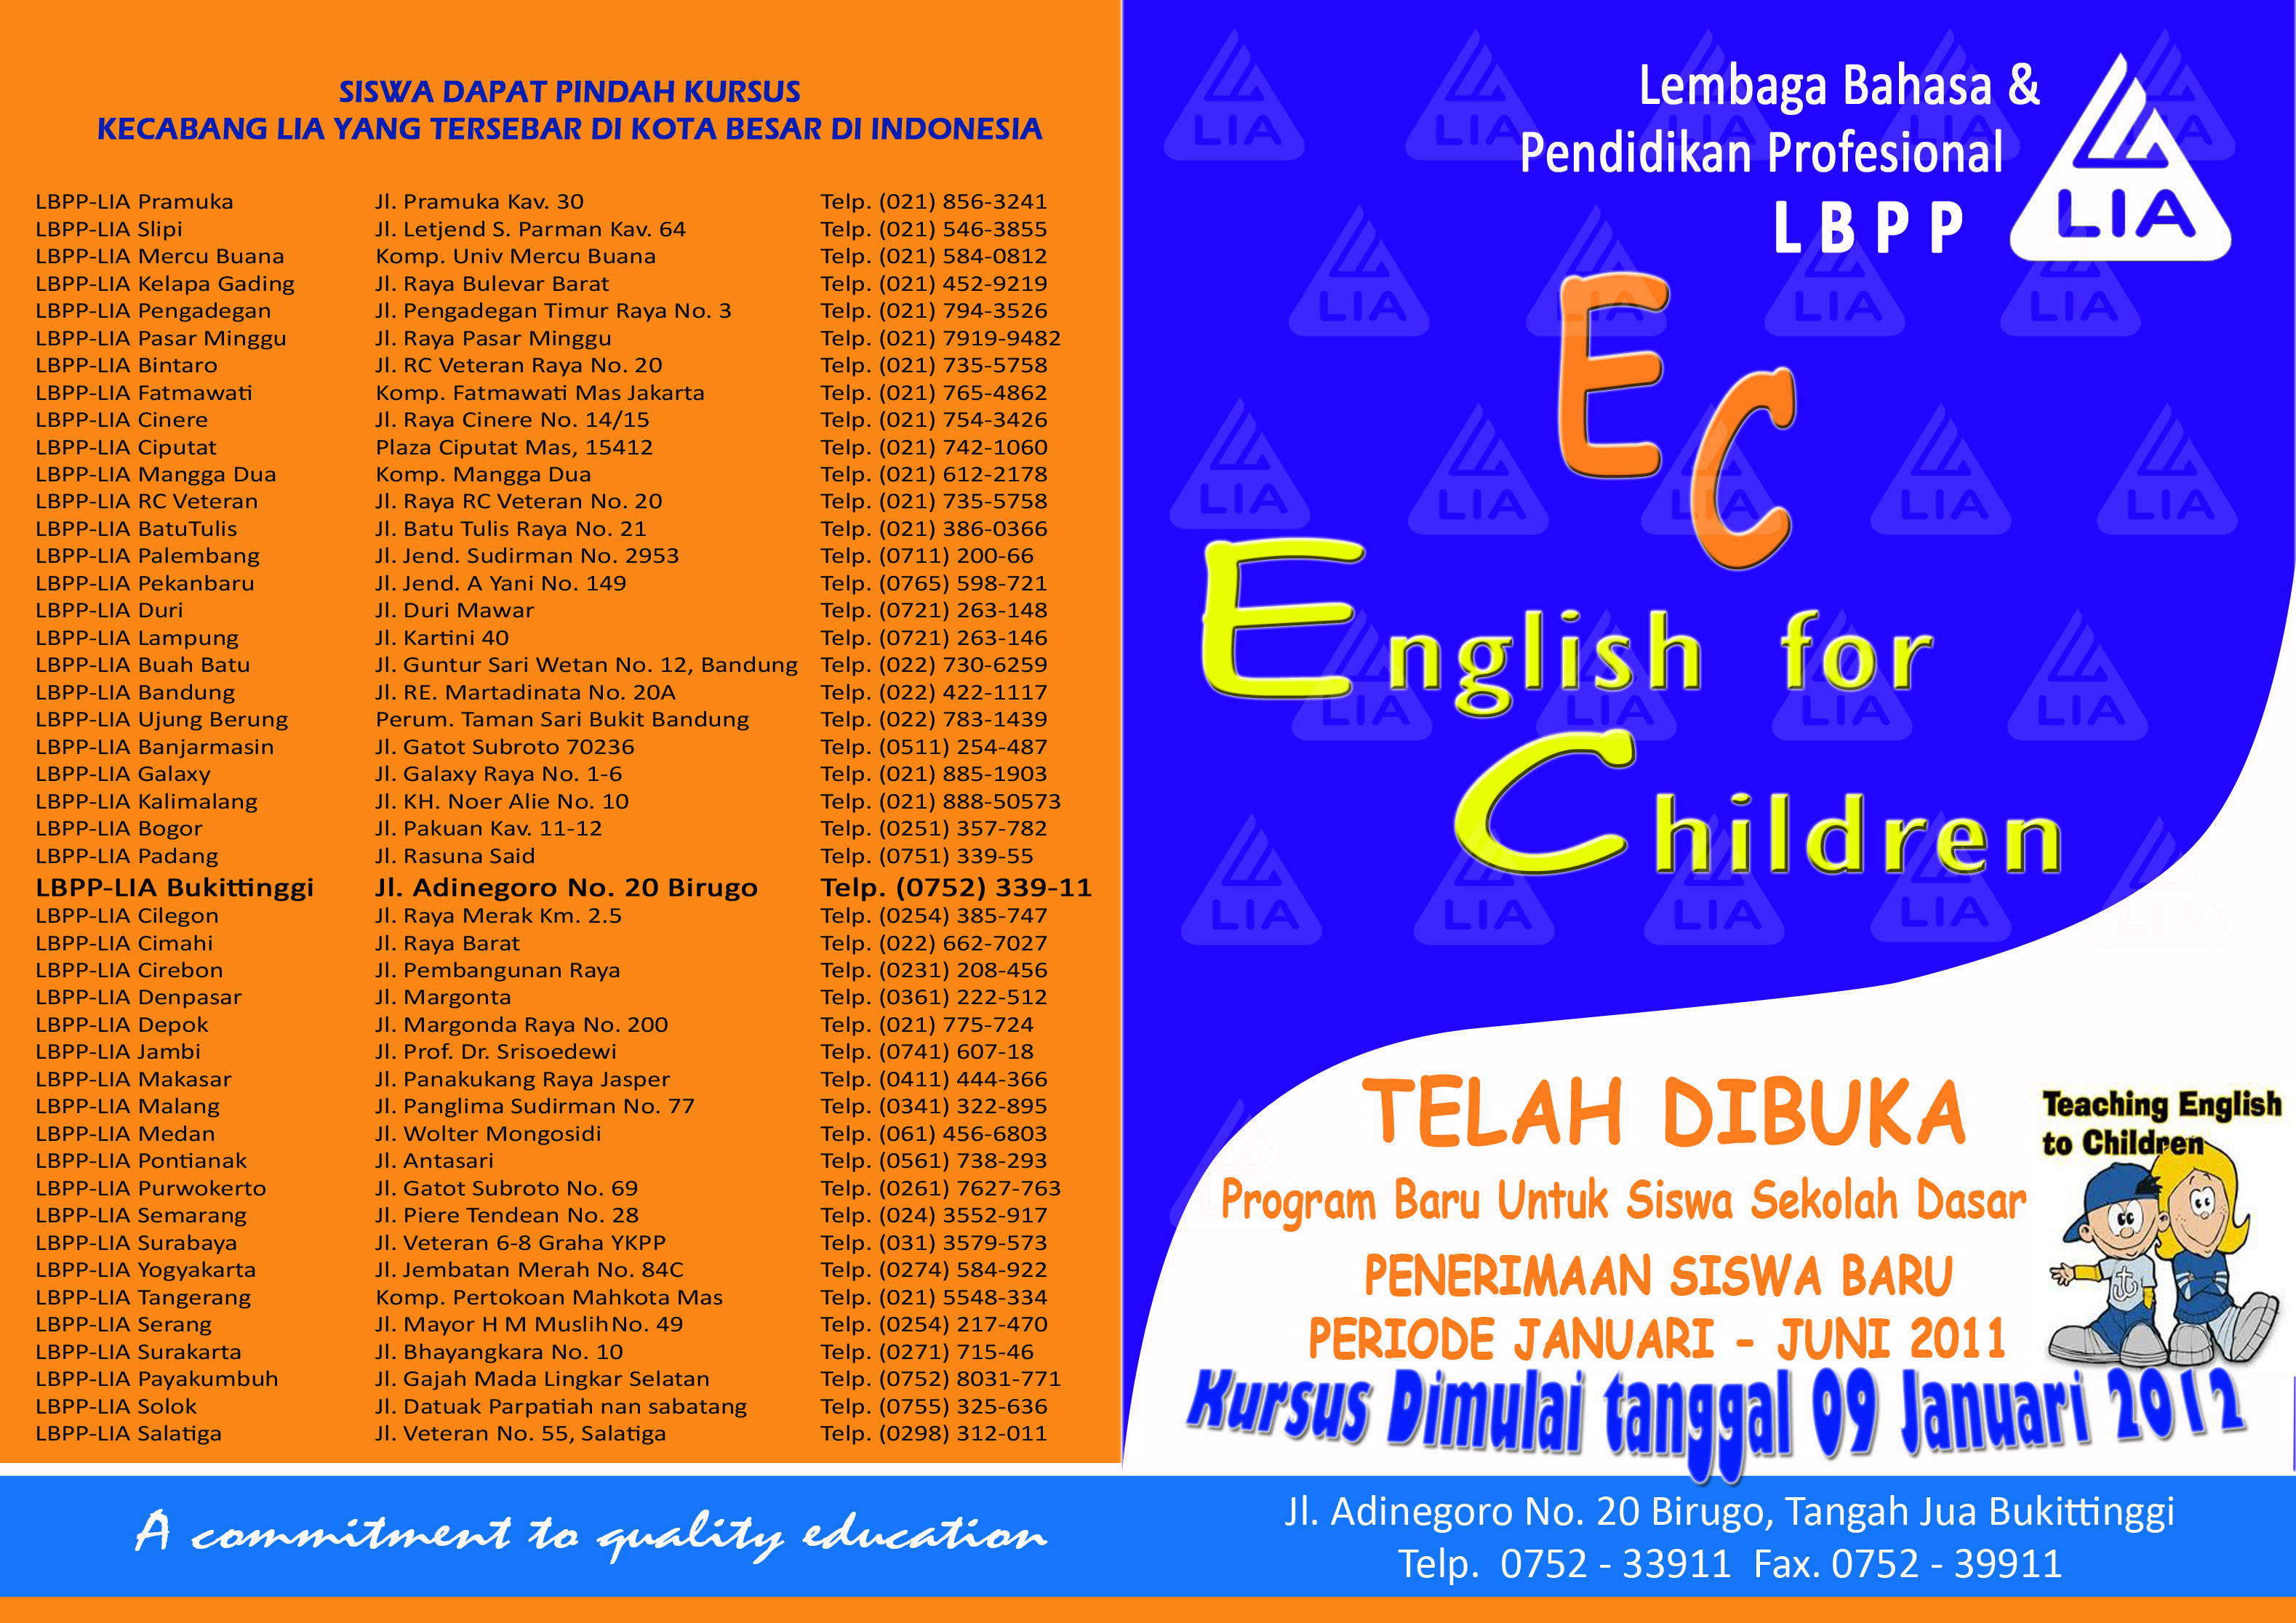 Brosur Englih for Children